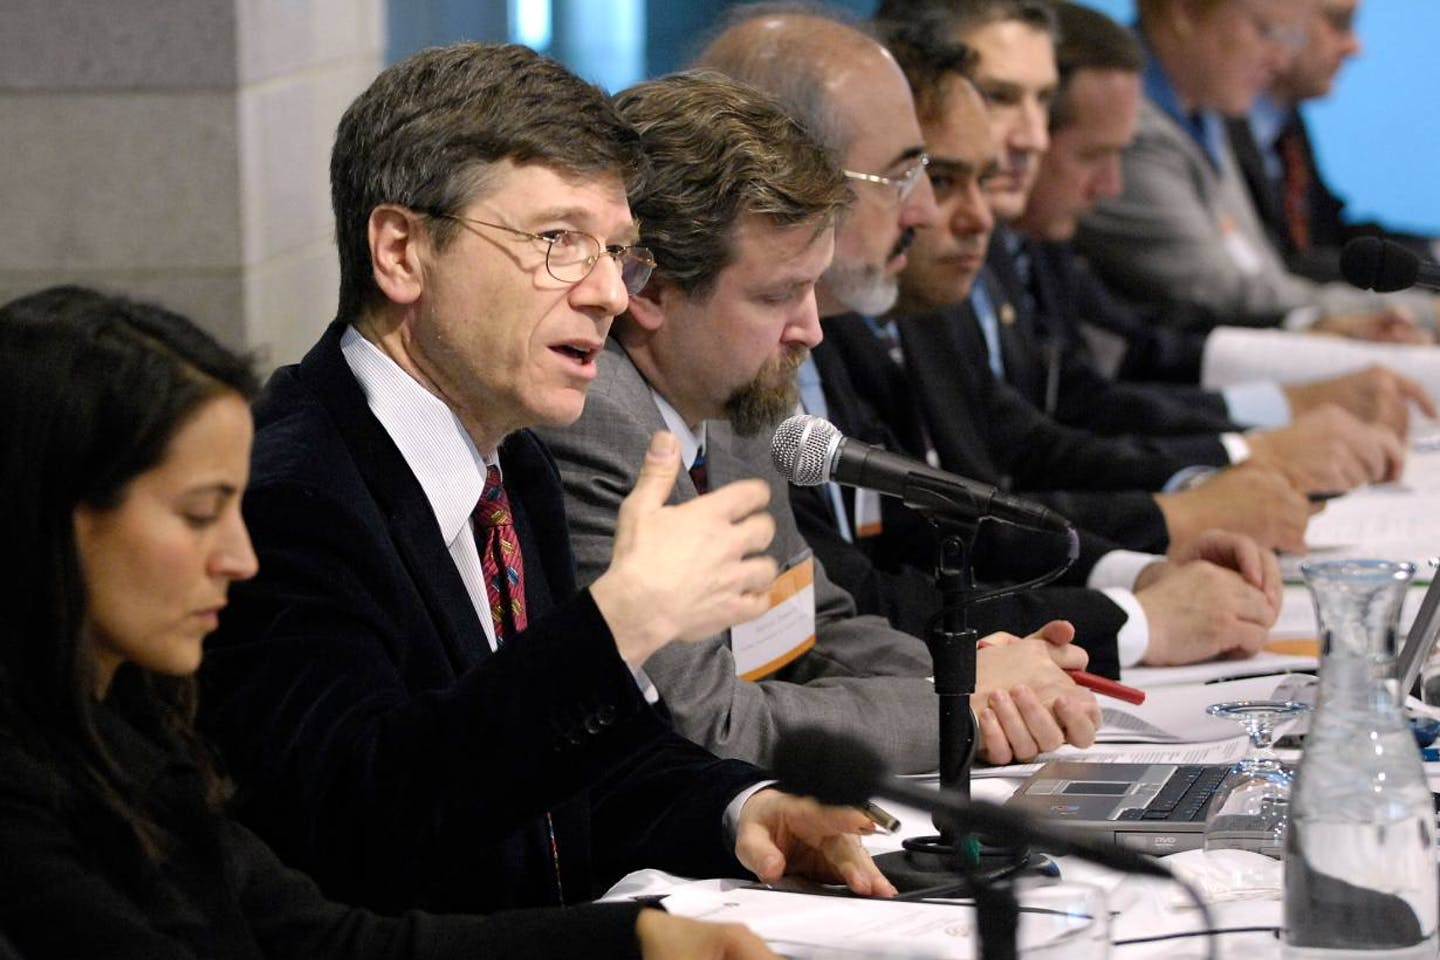 jeff sachs on climate justice